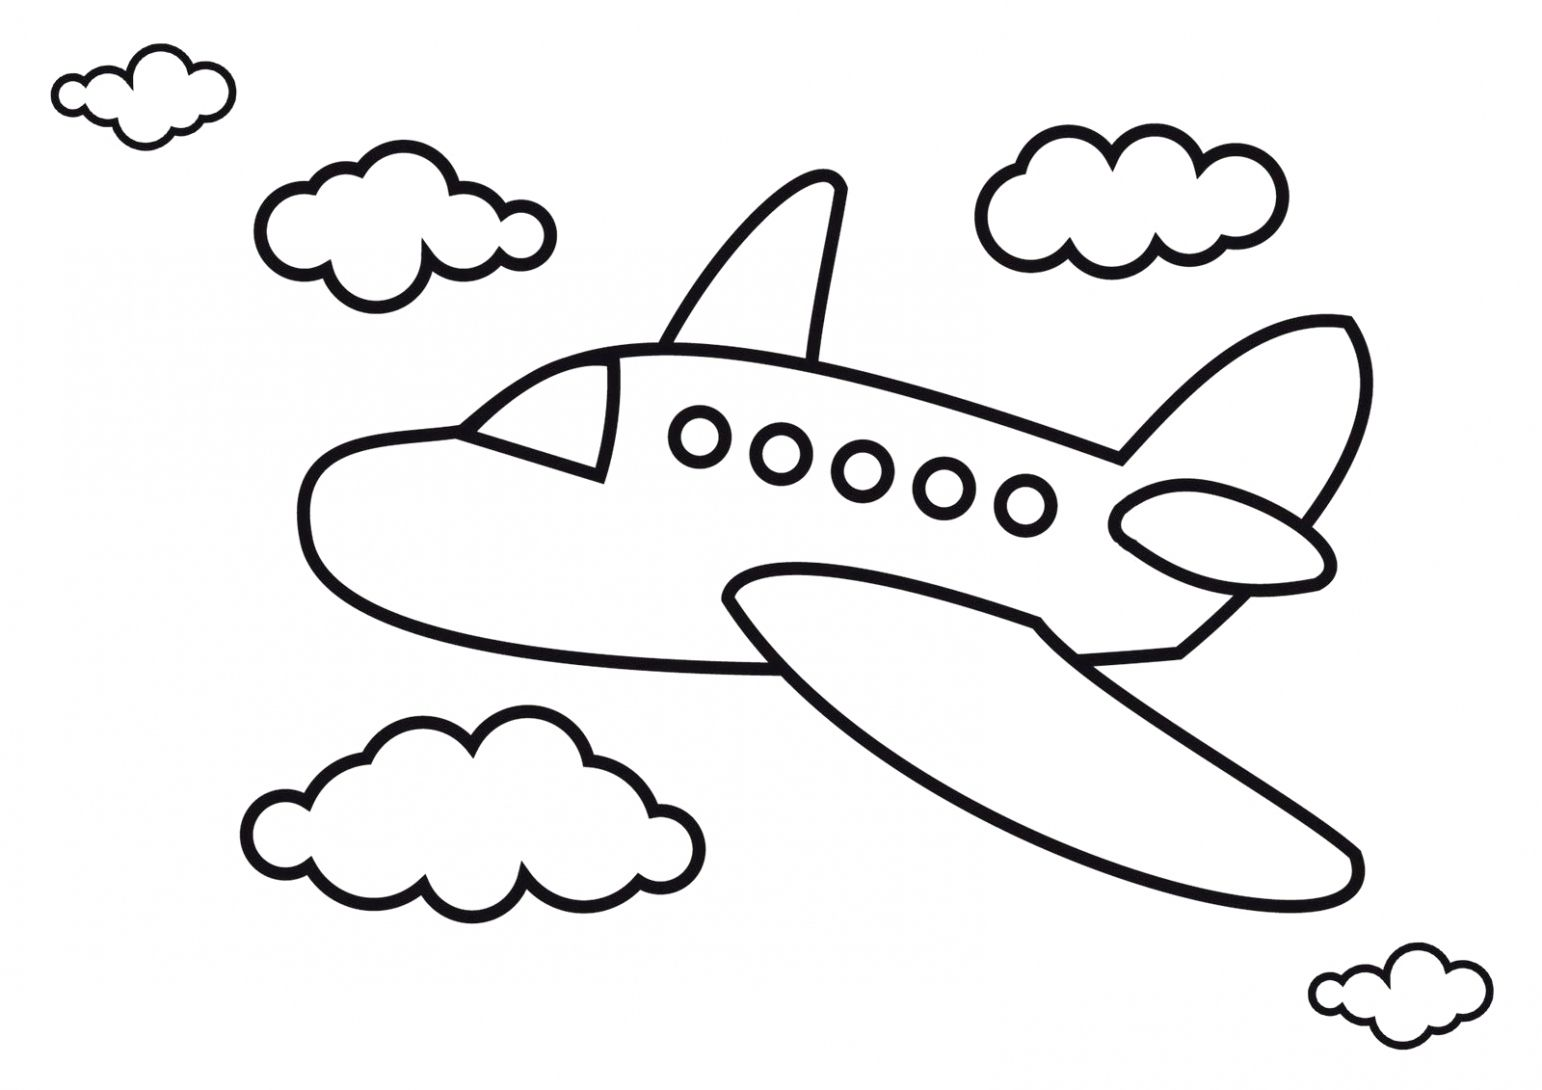 27 Excellent Photo Of Airplane Coloring Page Entitlementtrap Com Airplane Coloring Pages Coloring Pages Nature Coloring Pages For Kids